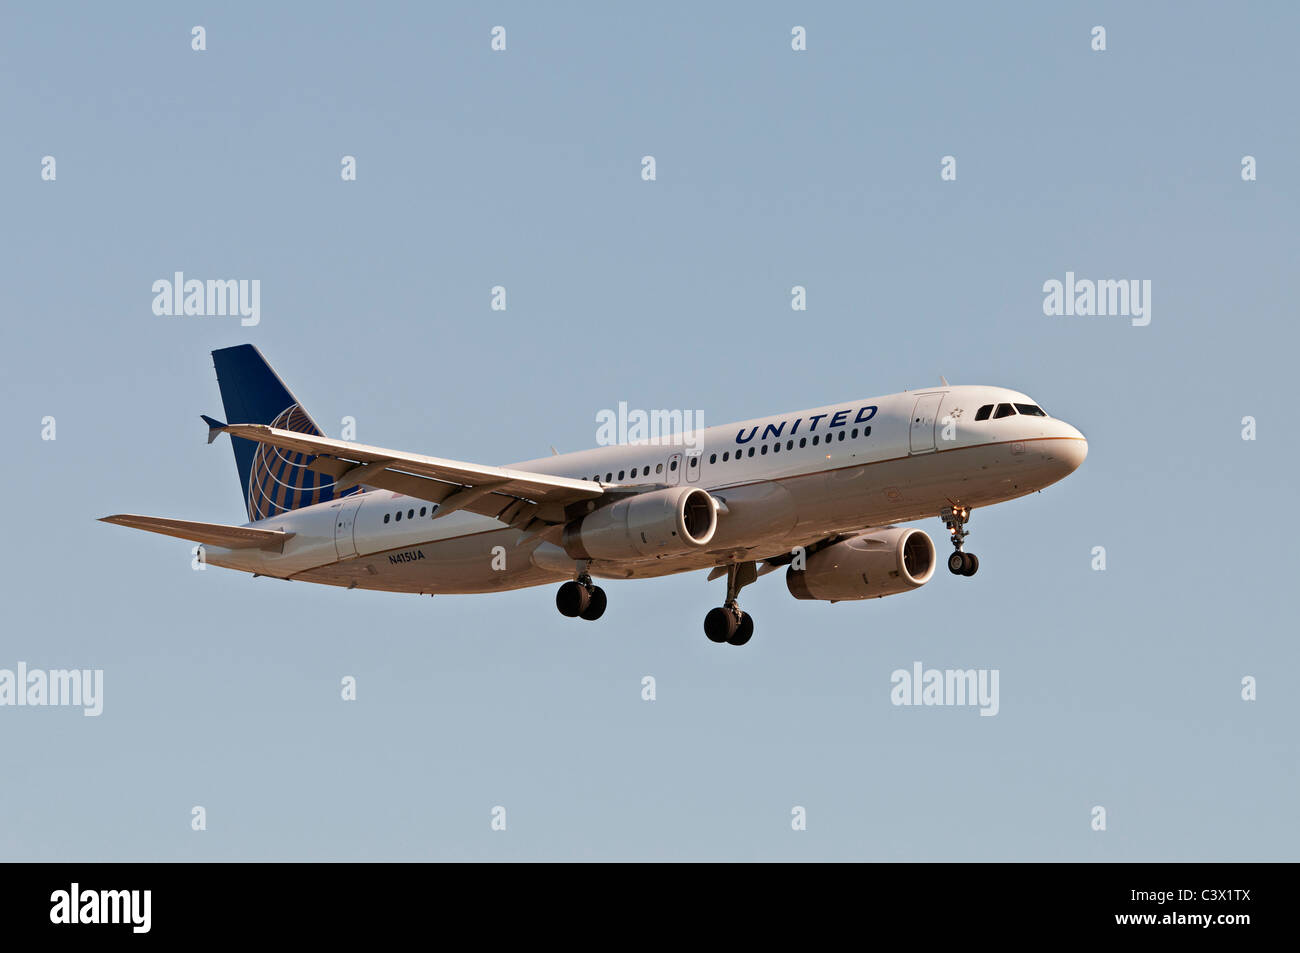 An Airbus A320 jet airliner belonging to United Continental Holdings, inc and painted in the airlines new UNITED - Stock Image